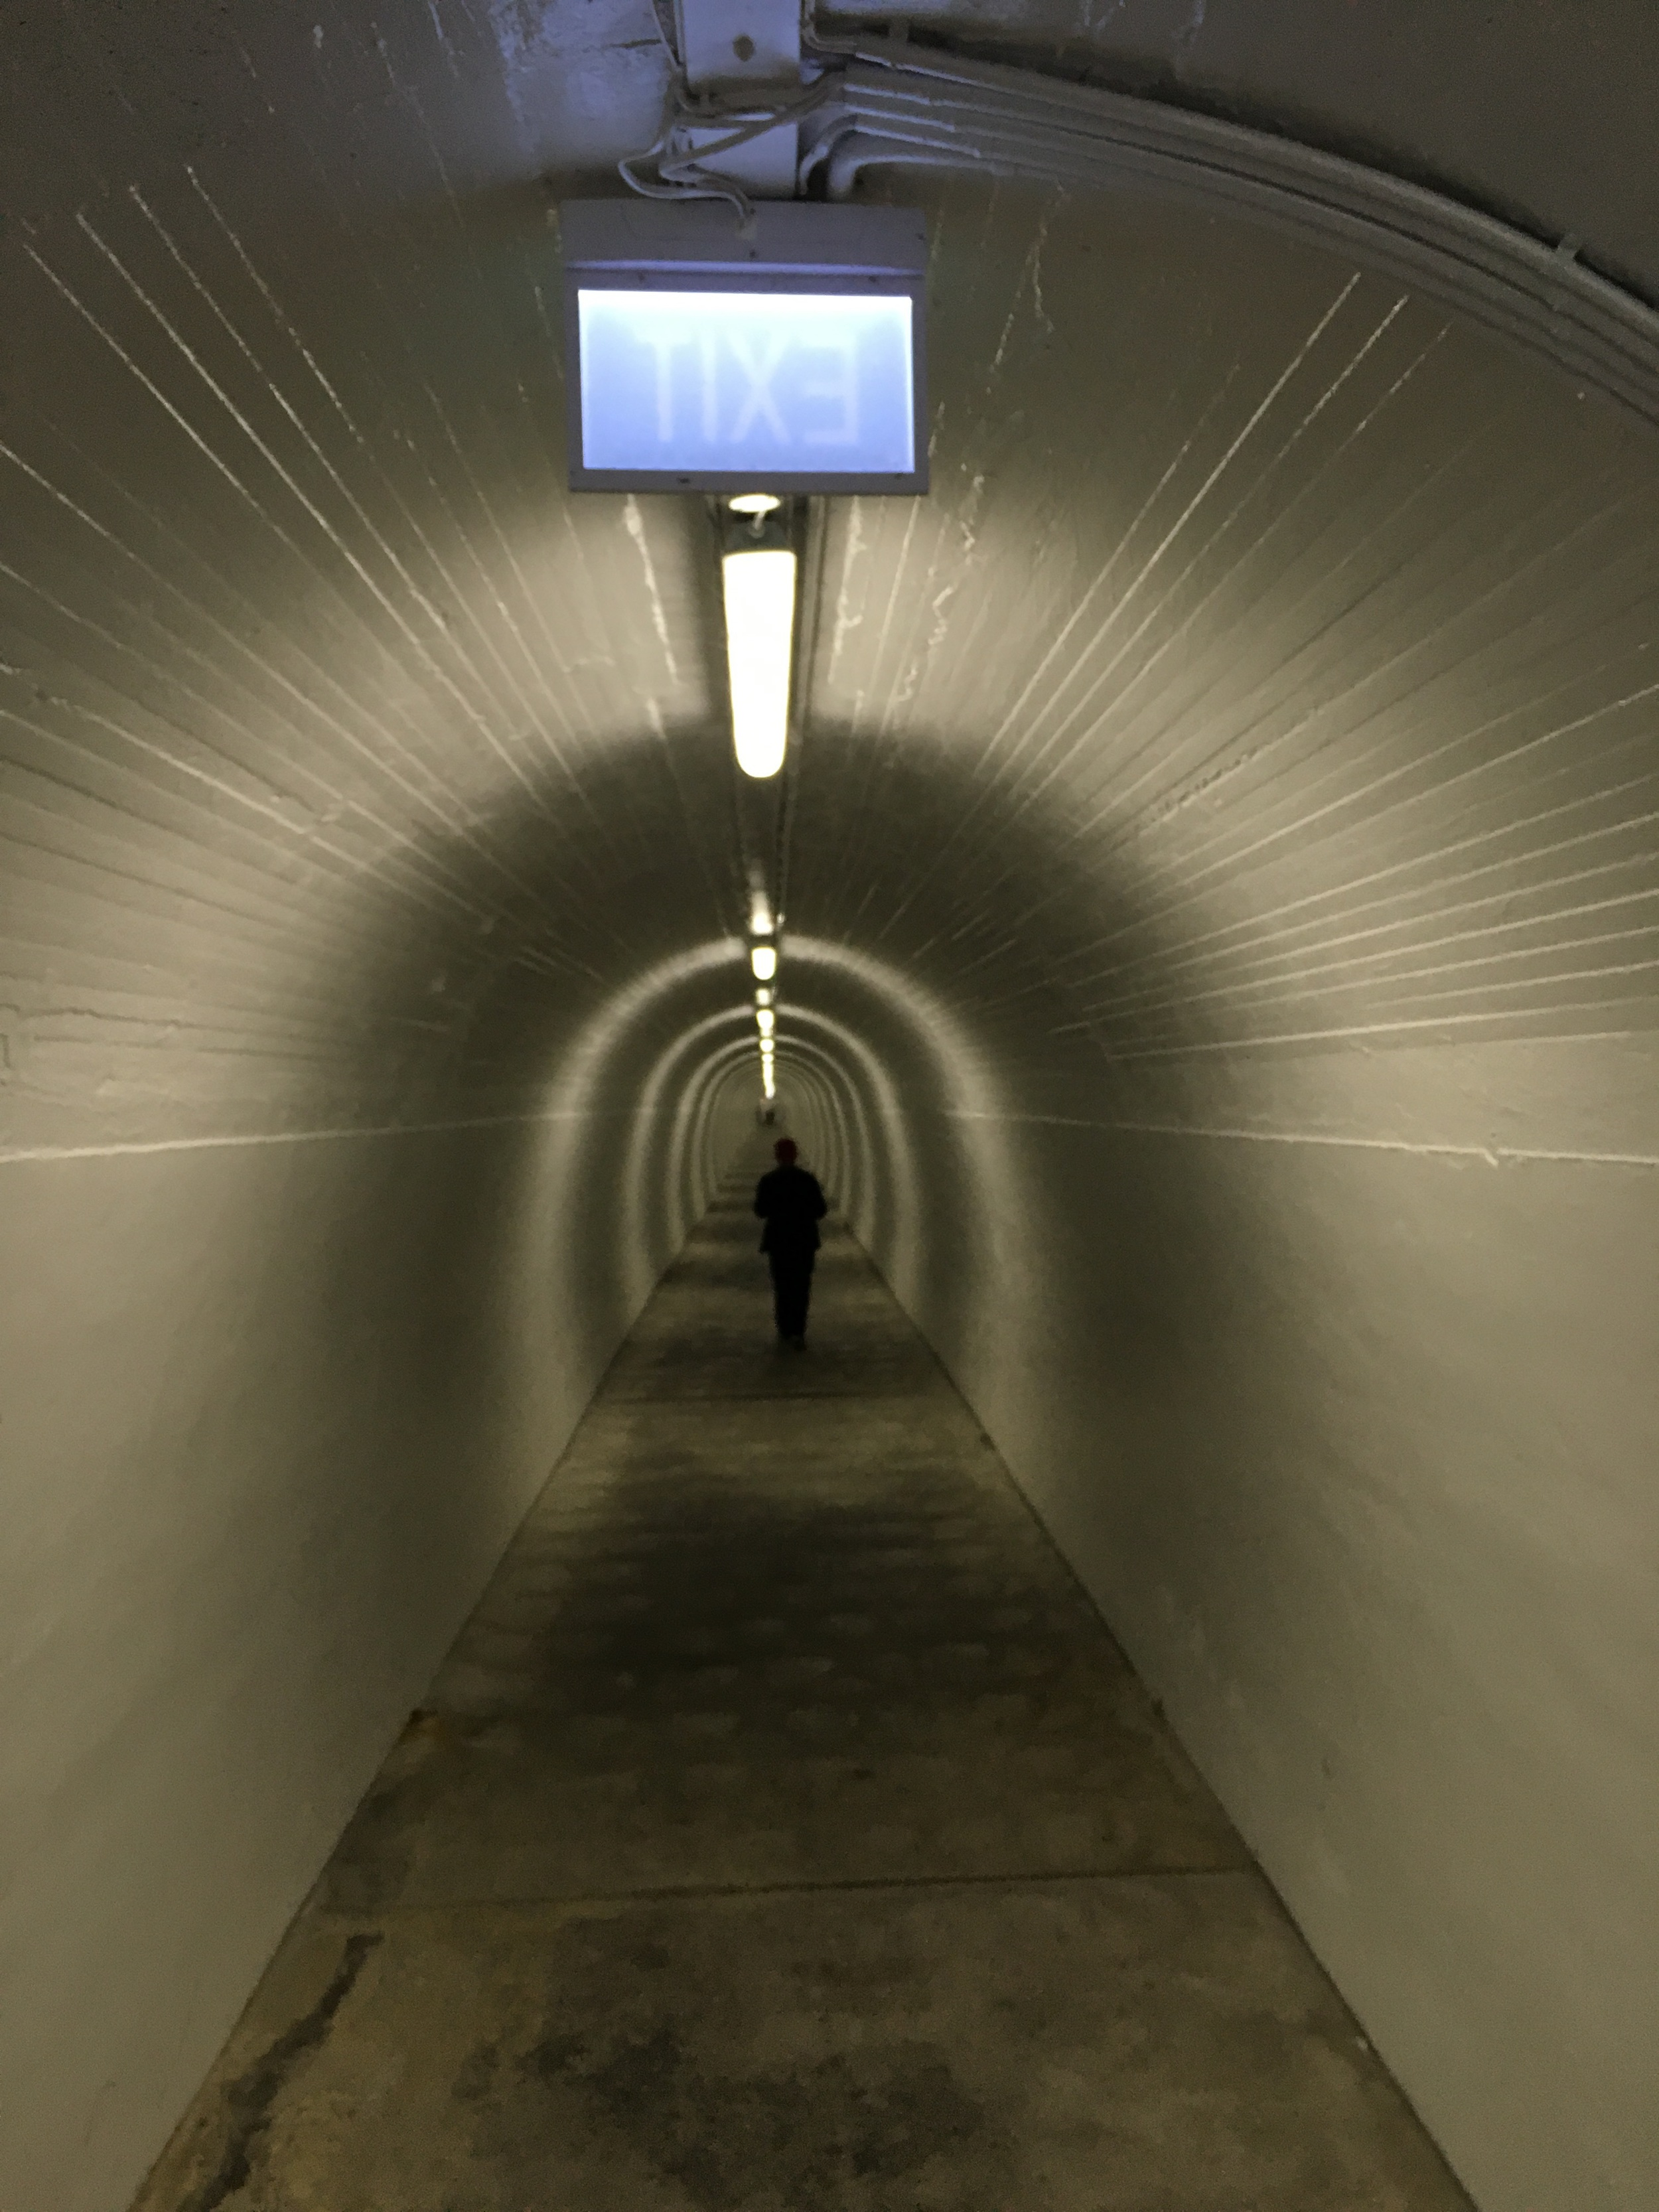 Tunnel into hill to reach Whanganui elevator